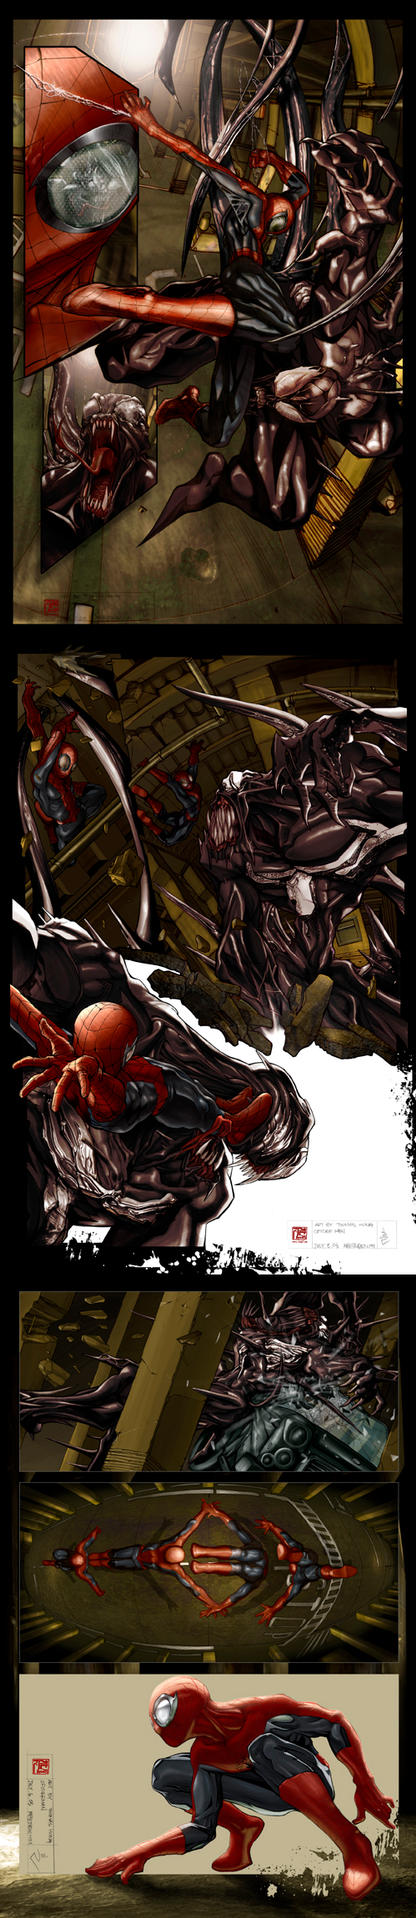 five.deadly.second-:spiderman: by HOON